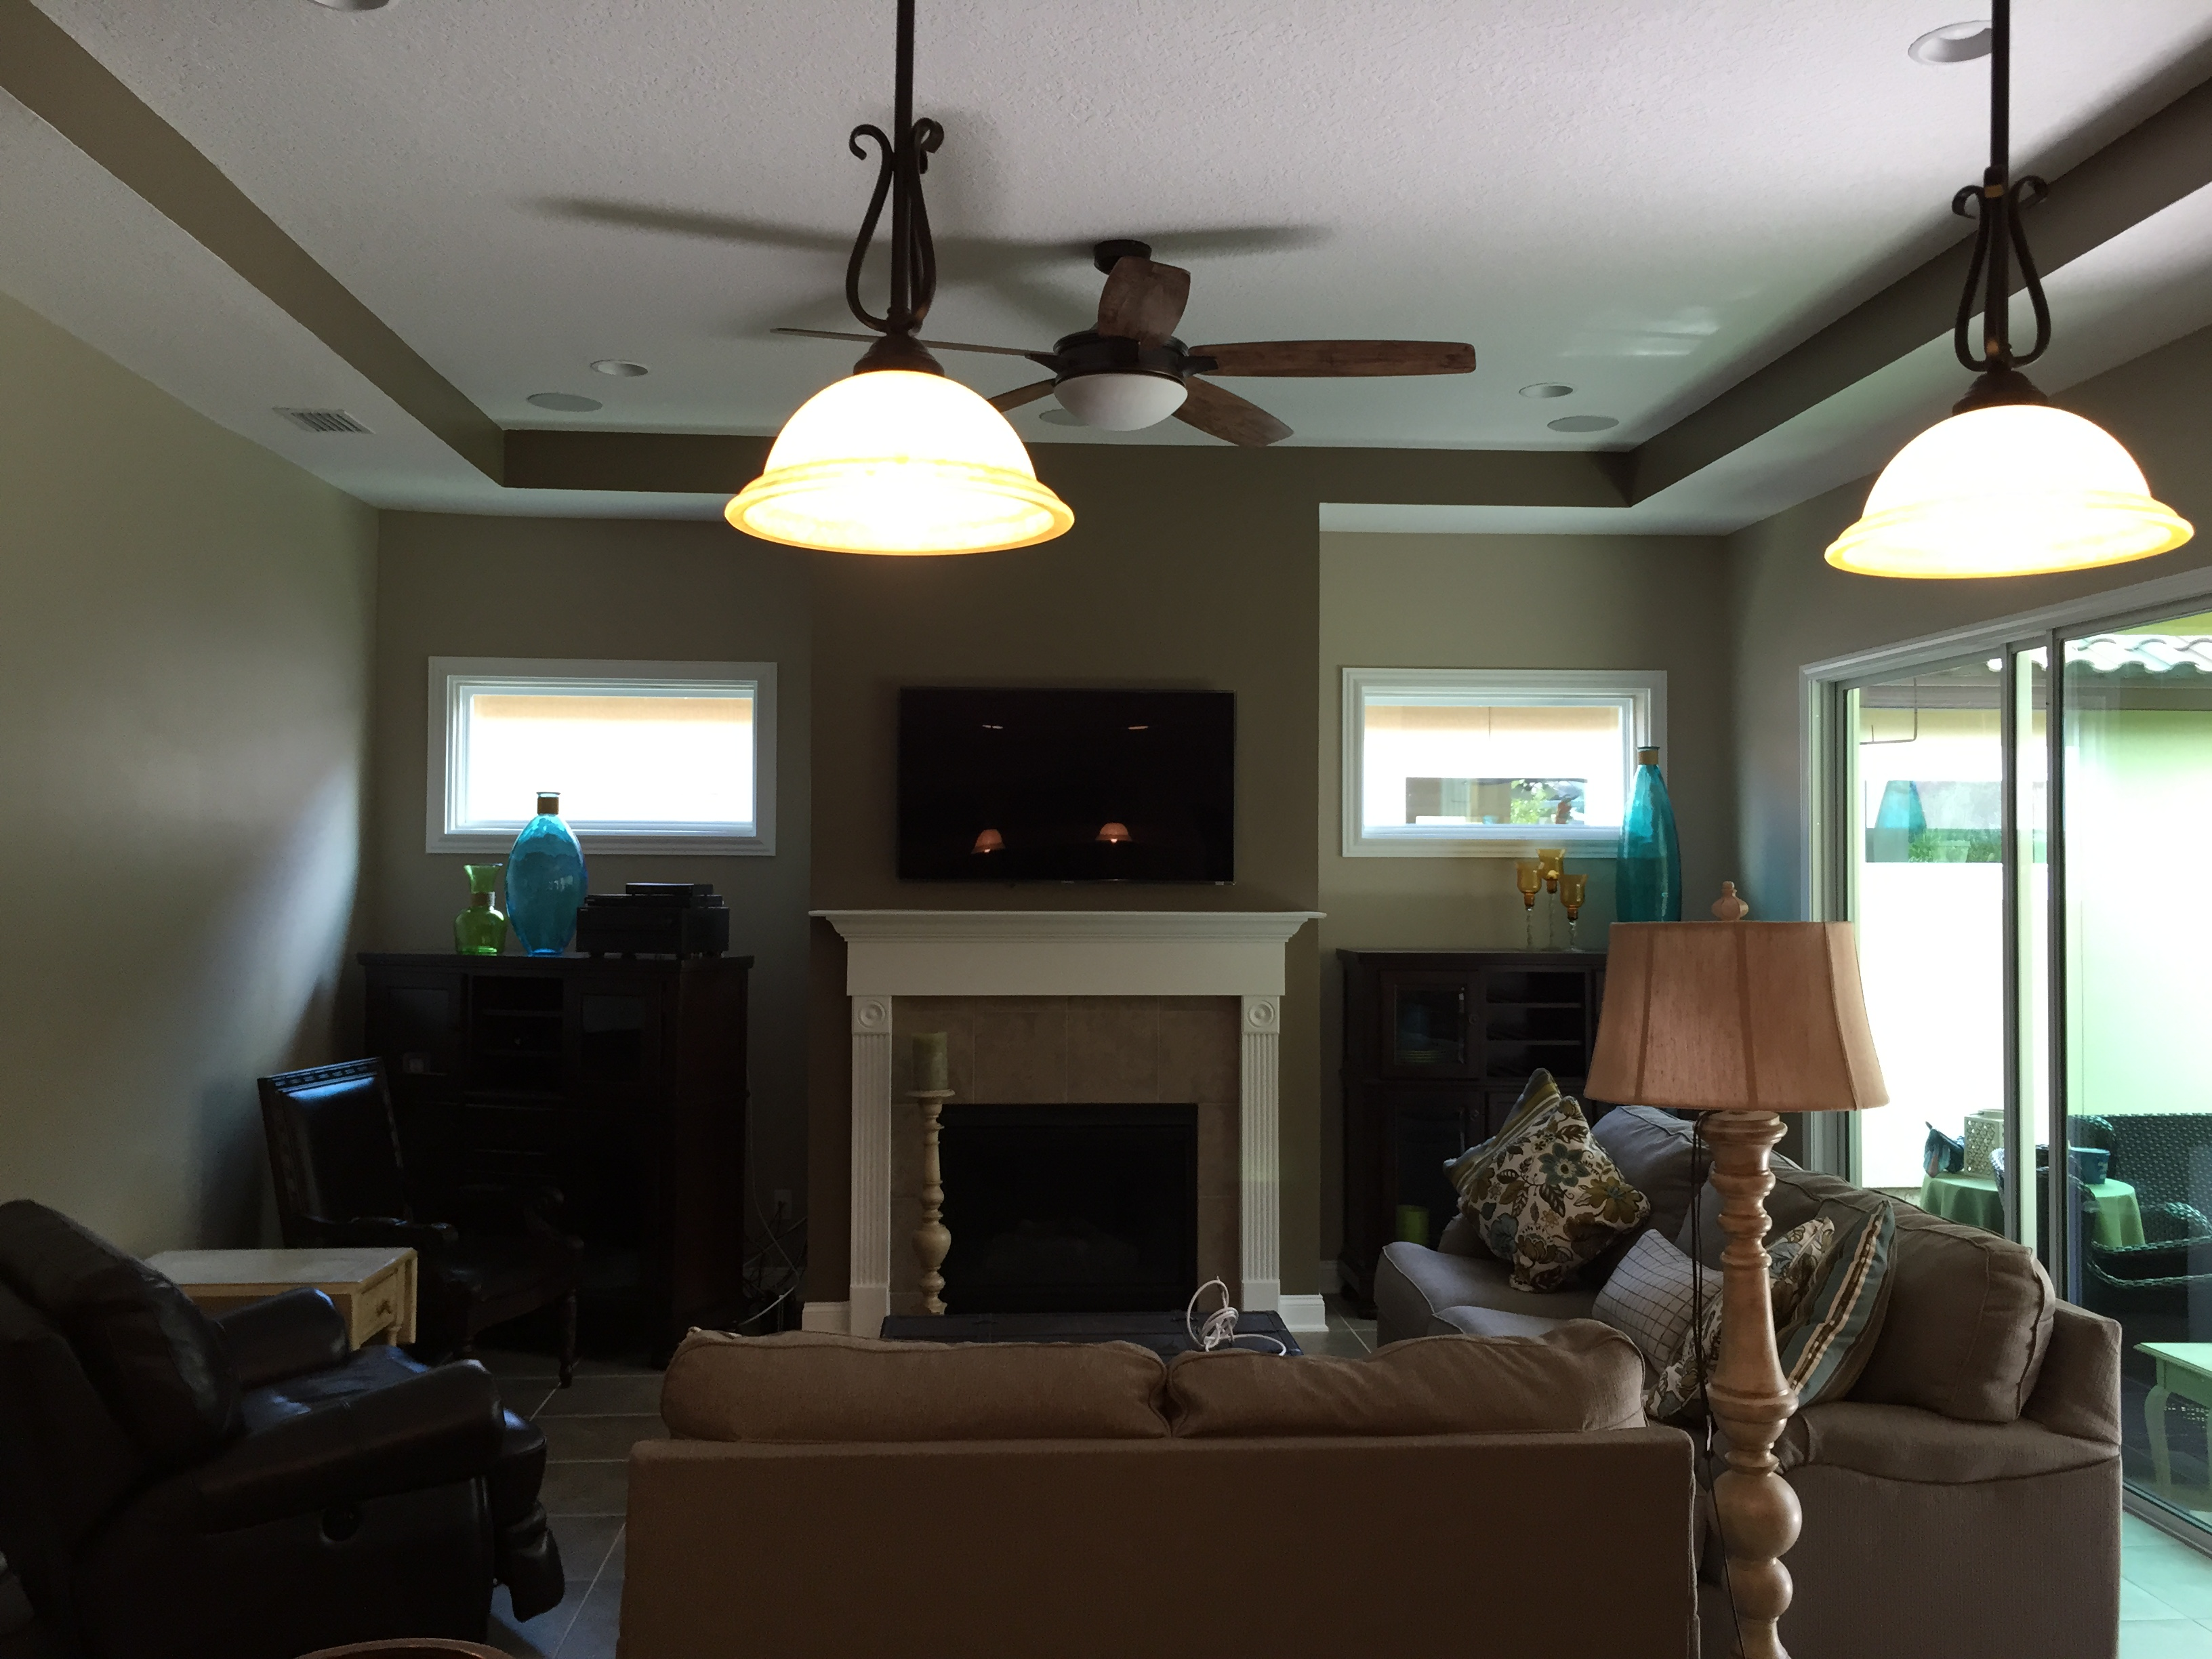 Painting services near me jacksonville florida straight - Interior painting jacksonville fl ...